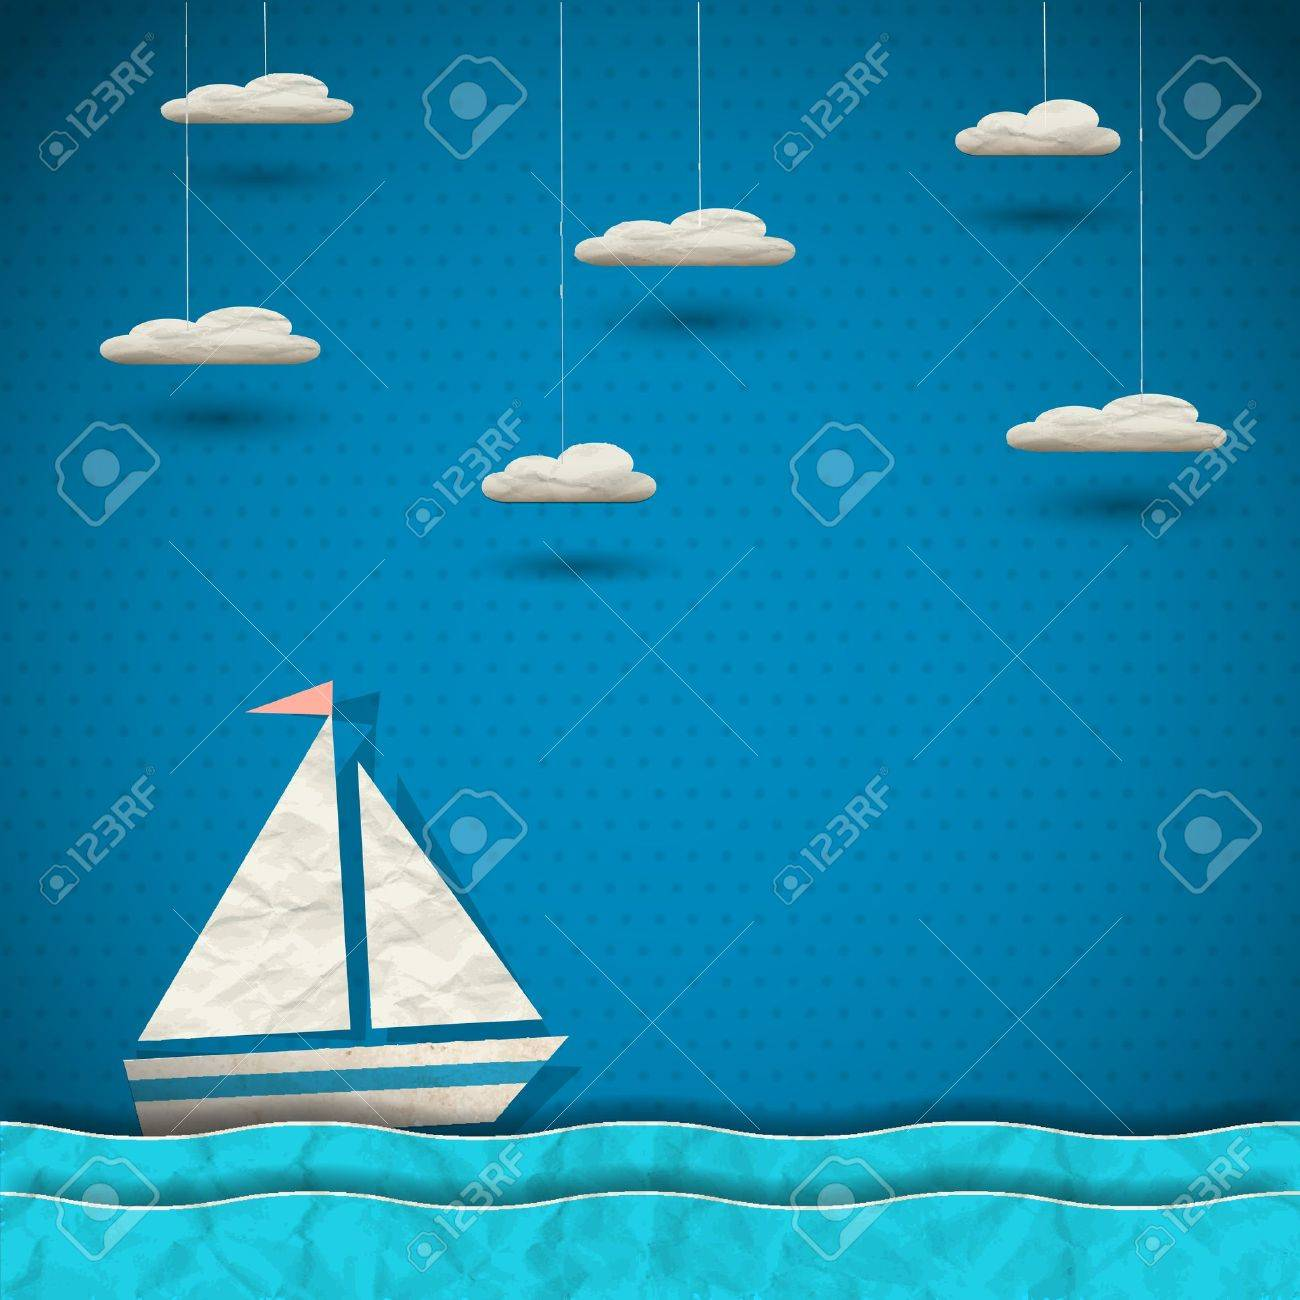 Scrapbook paper clouds - Sailing Boat And Clouds Paper Art Stock Vector 16852928